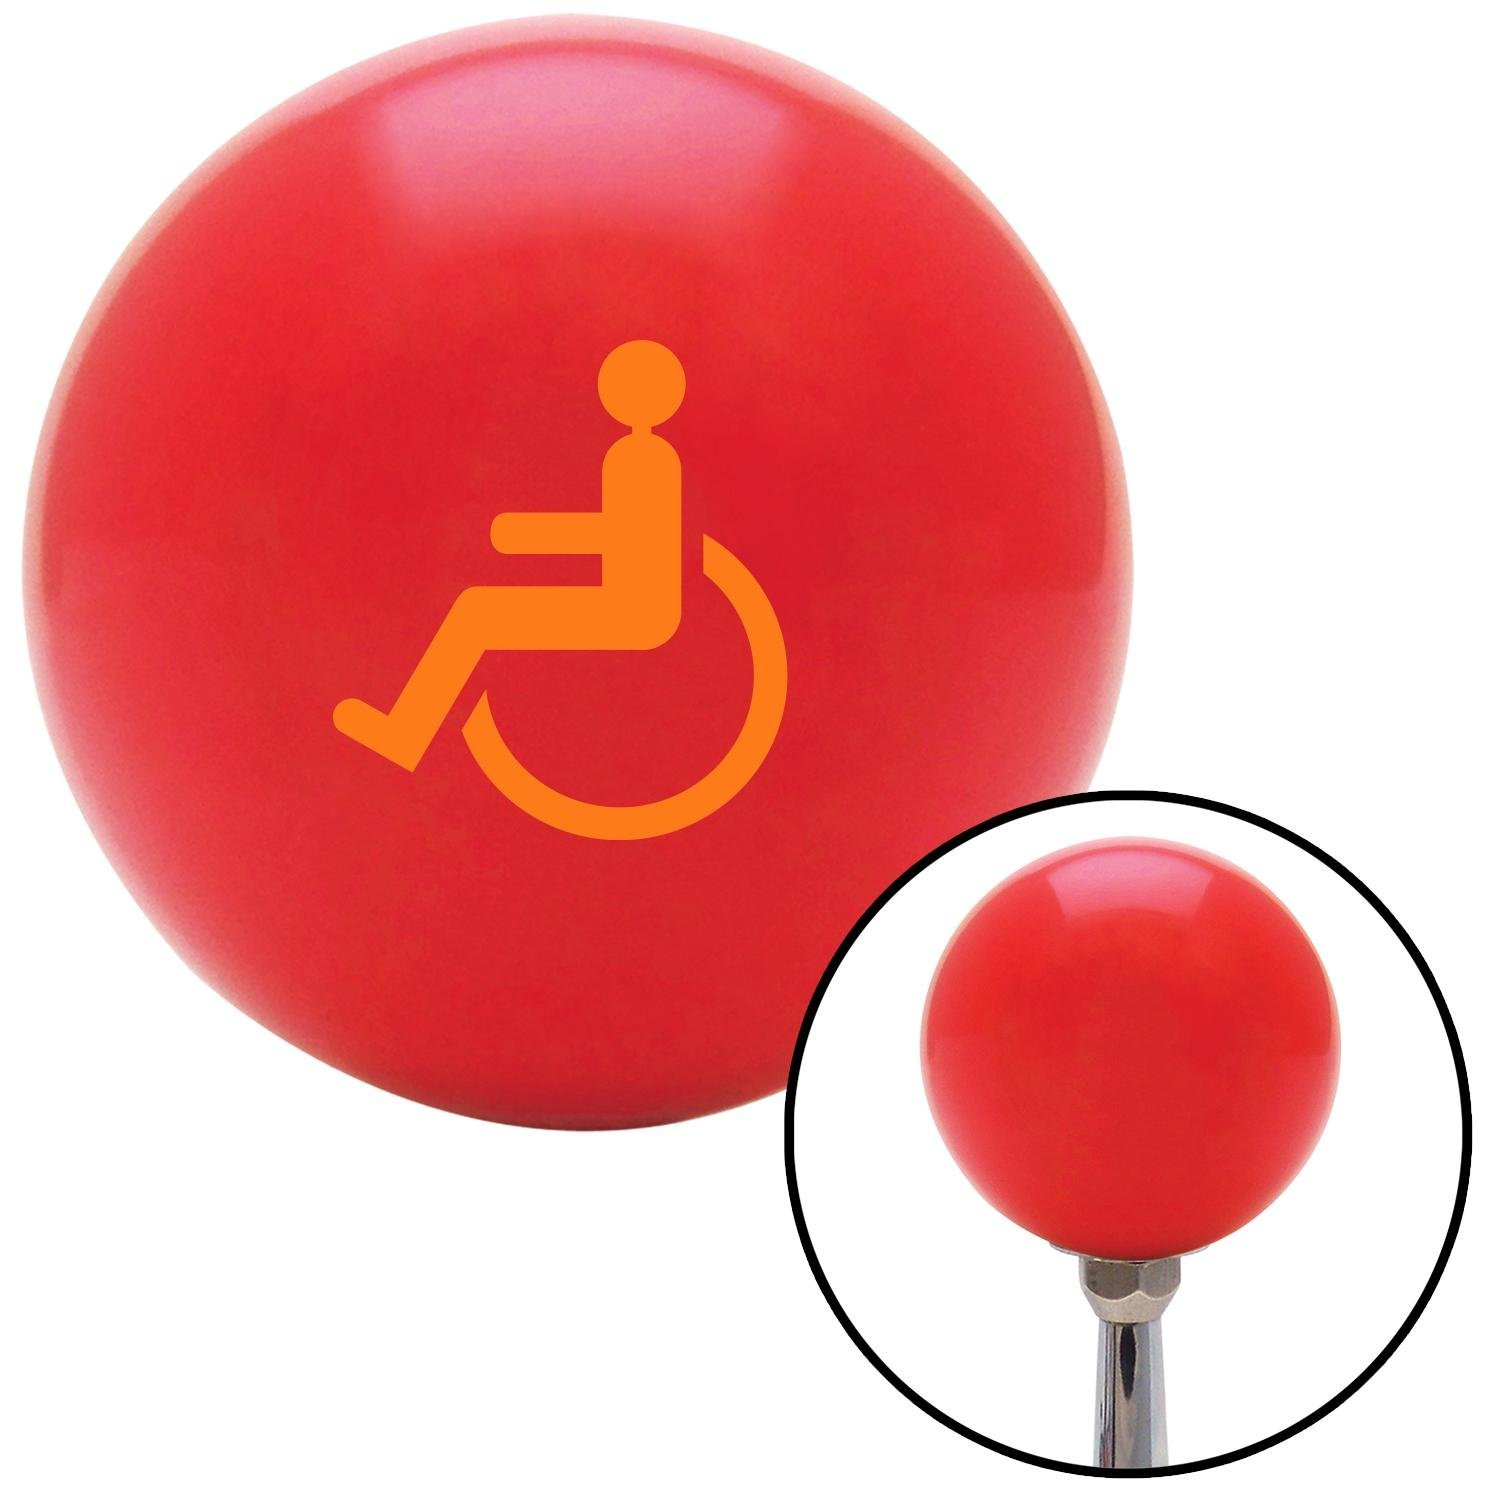 American Shifter 101987 Red Shift Knob with M16 x 1.5 Insert Orange Wheelchair